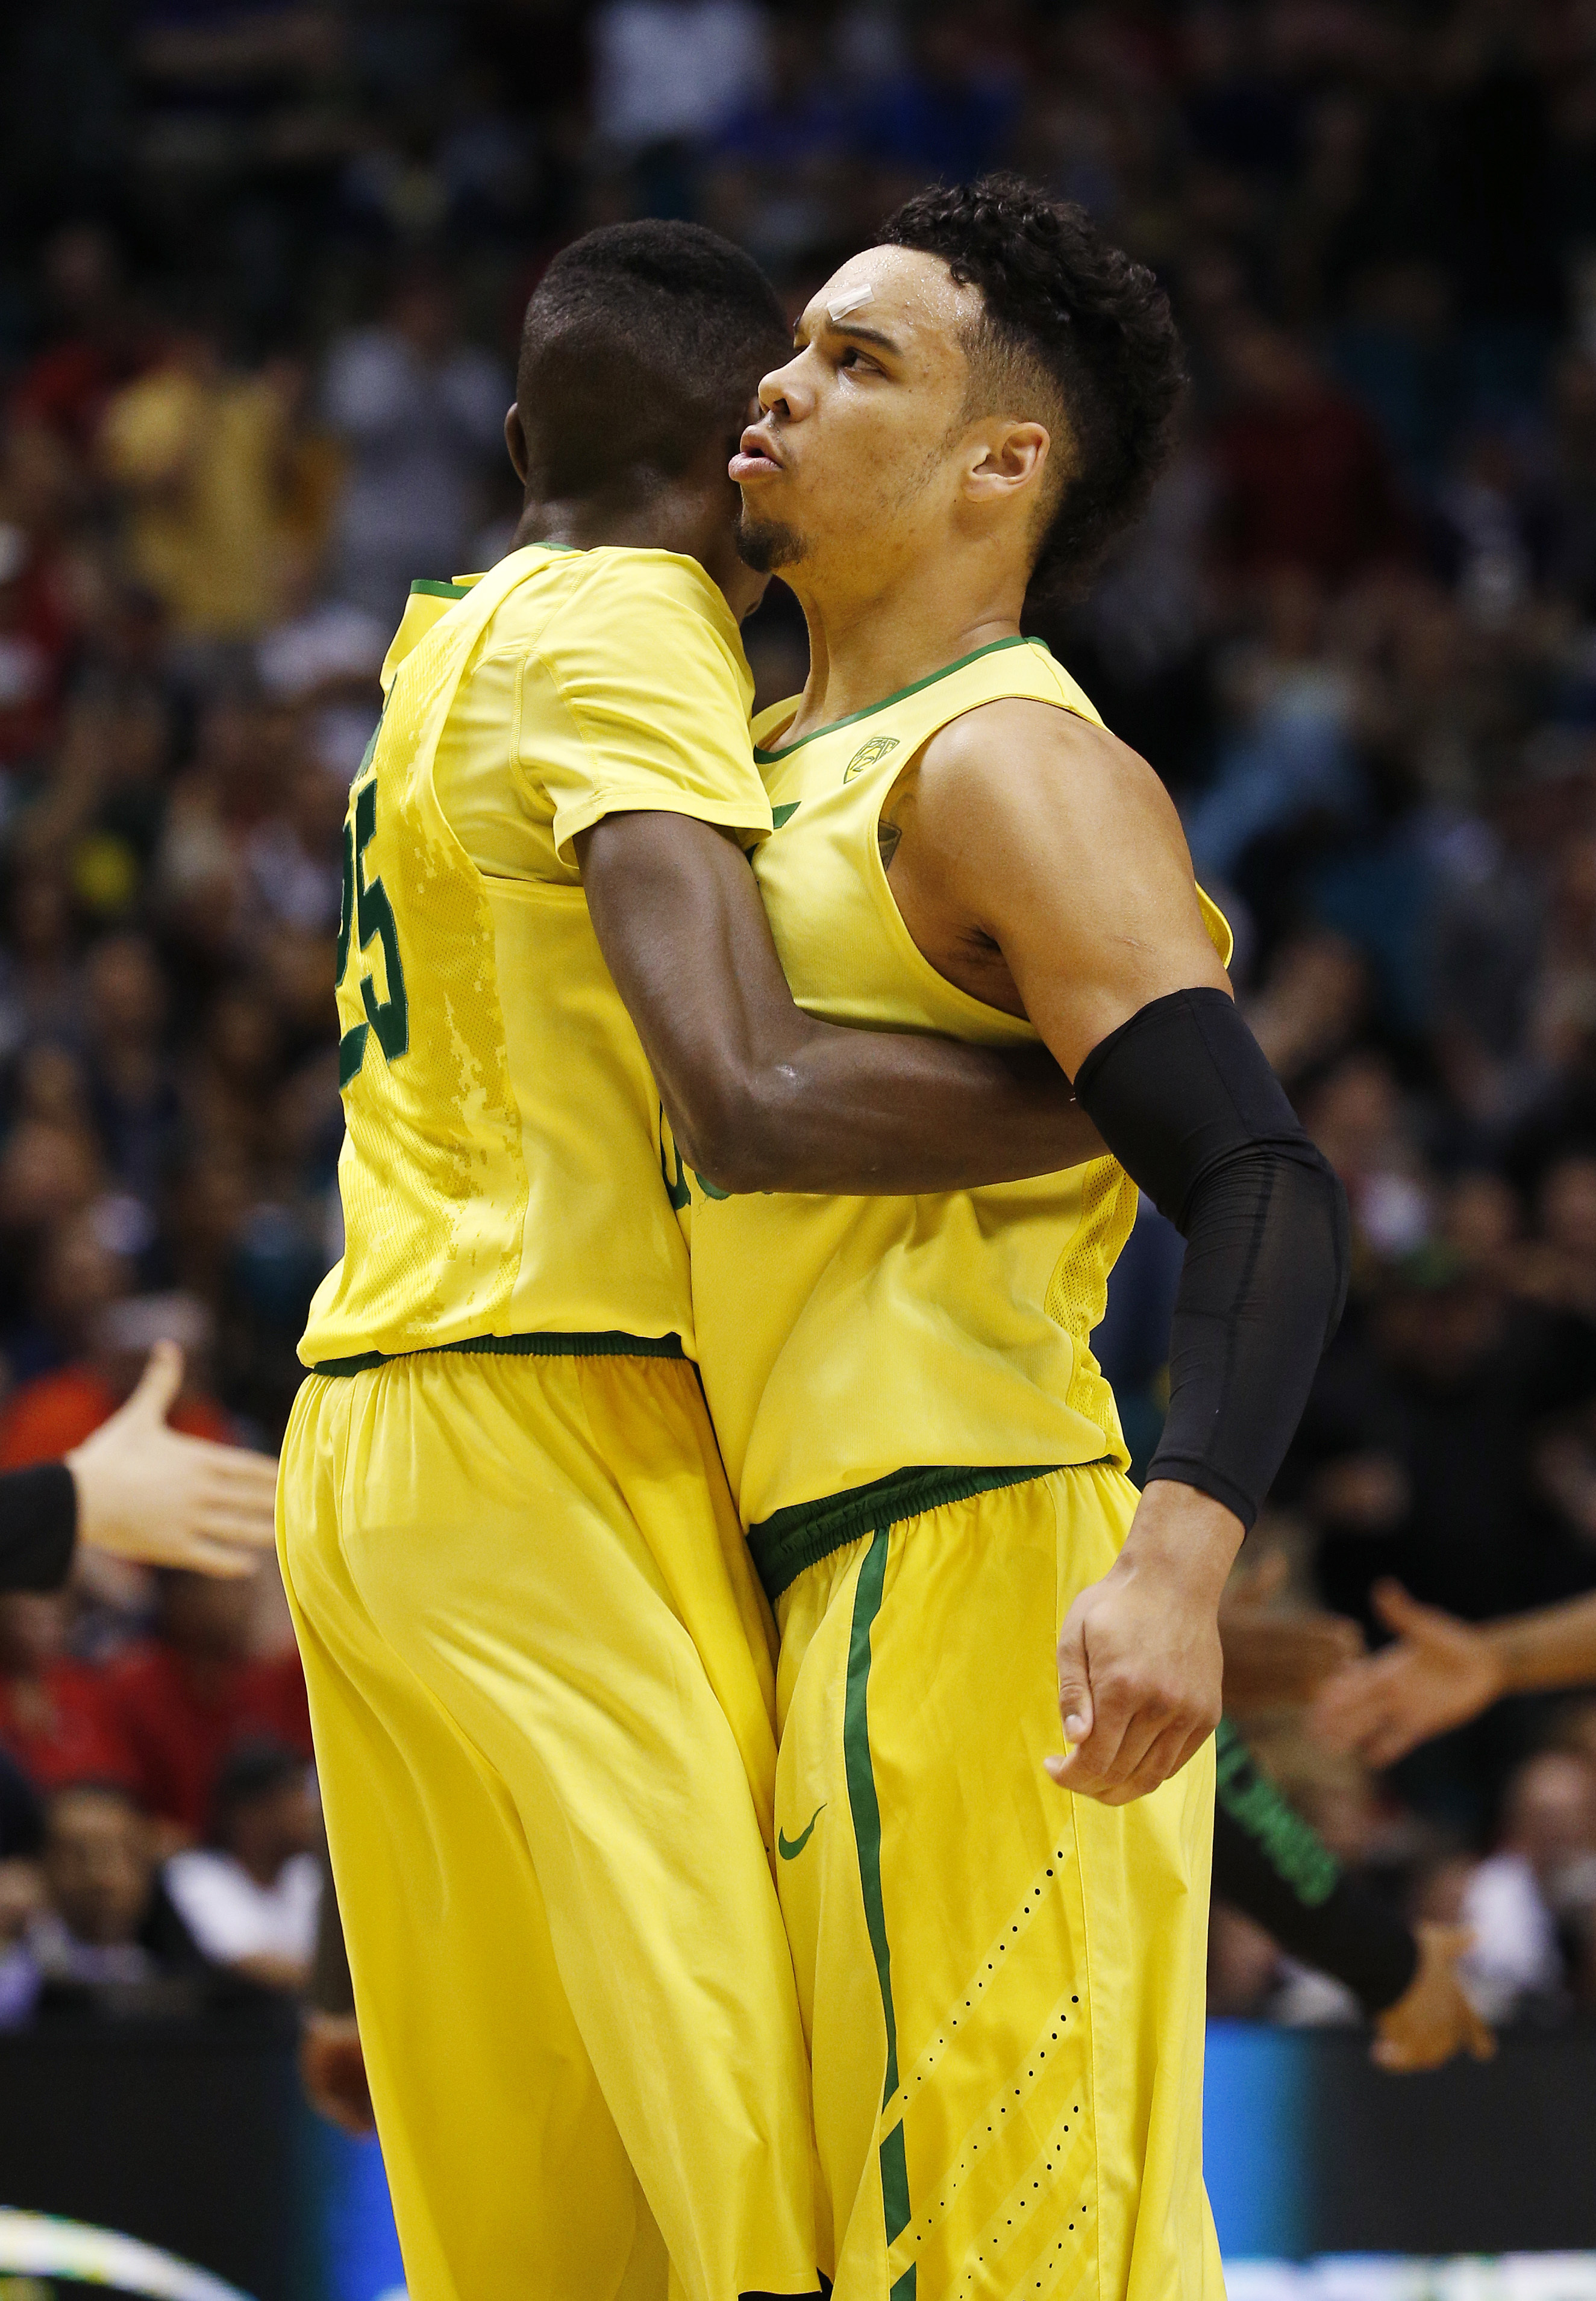 Oregon forwards Chris Boucher, left, and Dillon Brooks celebrate after a play against Arizona during the first half of an NCAA college basketball game in the semifinal round of the Pac-12 men's tournament Friday, March 11, 2016, in Las Vegas. (AP Photo/Jo